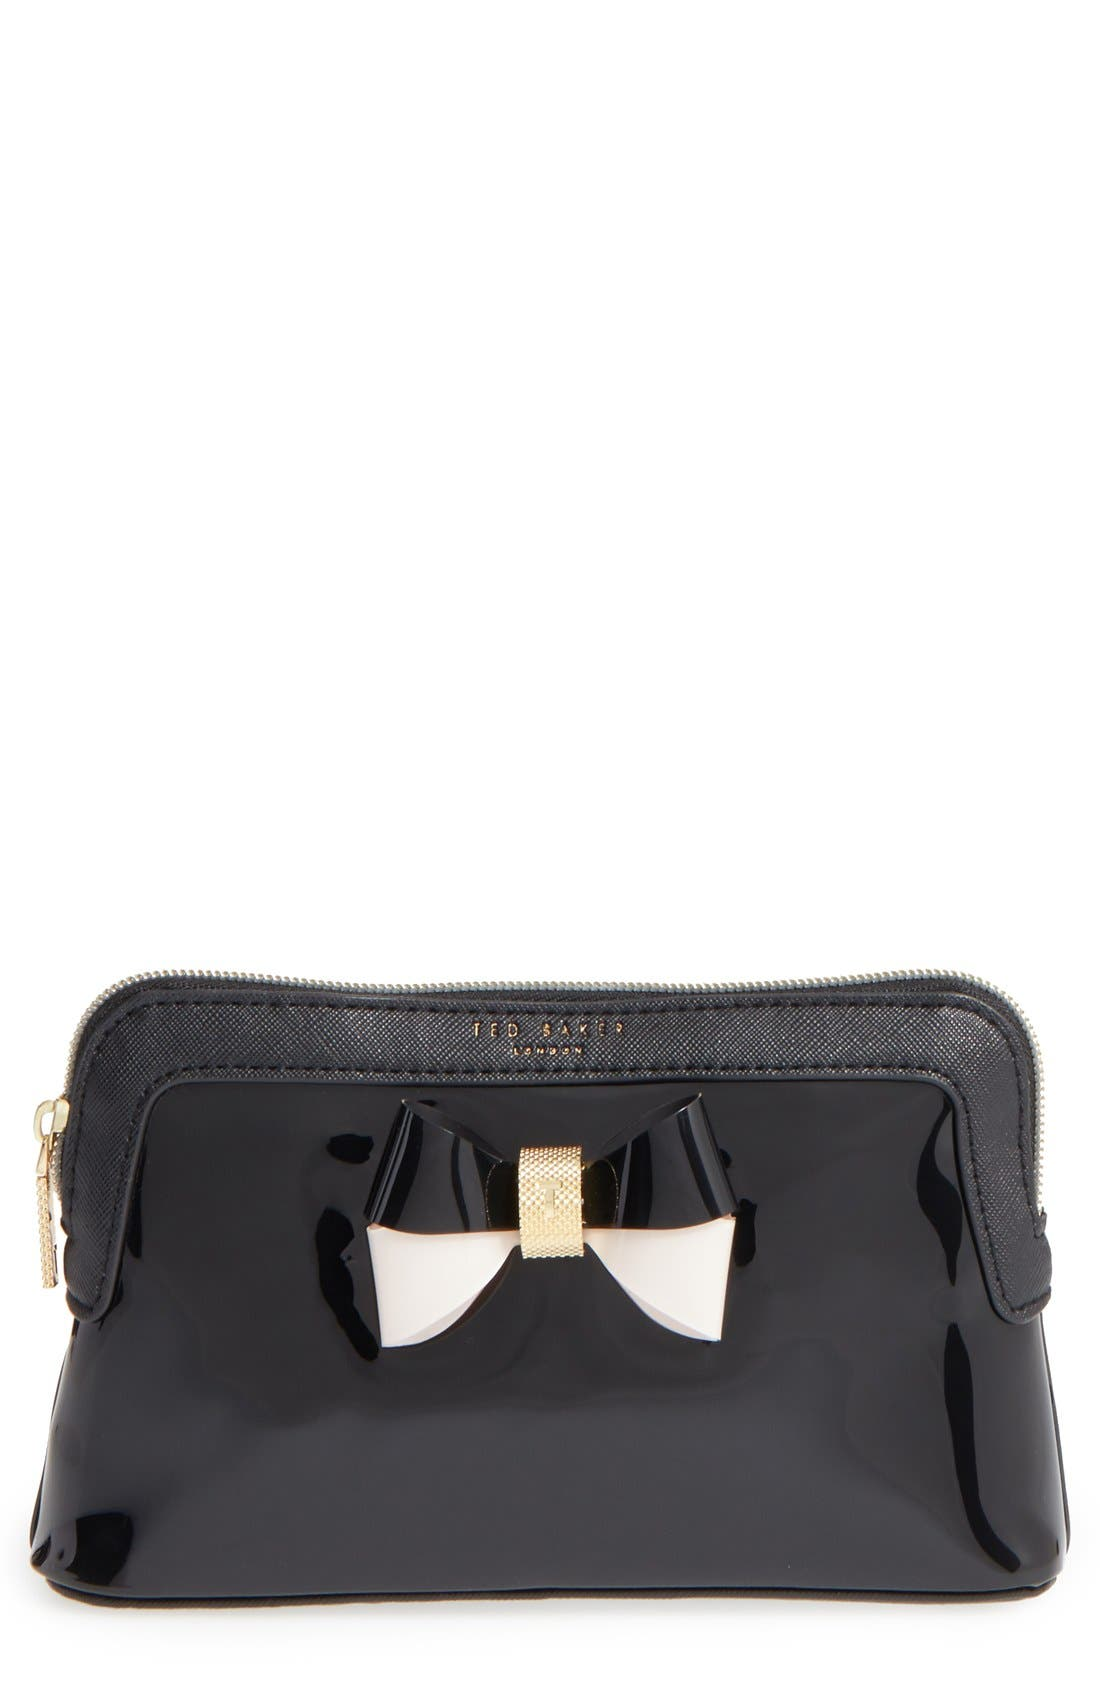 TED BAKER LONDON 'Rosamm' Cosmetics Case, Main, color, 001